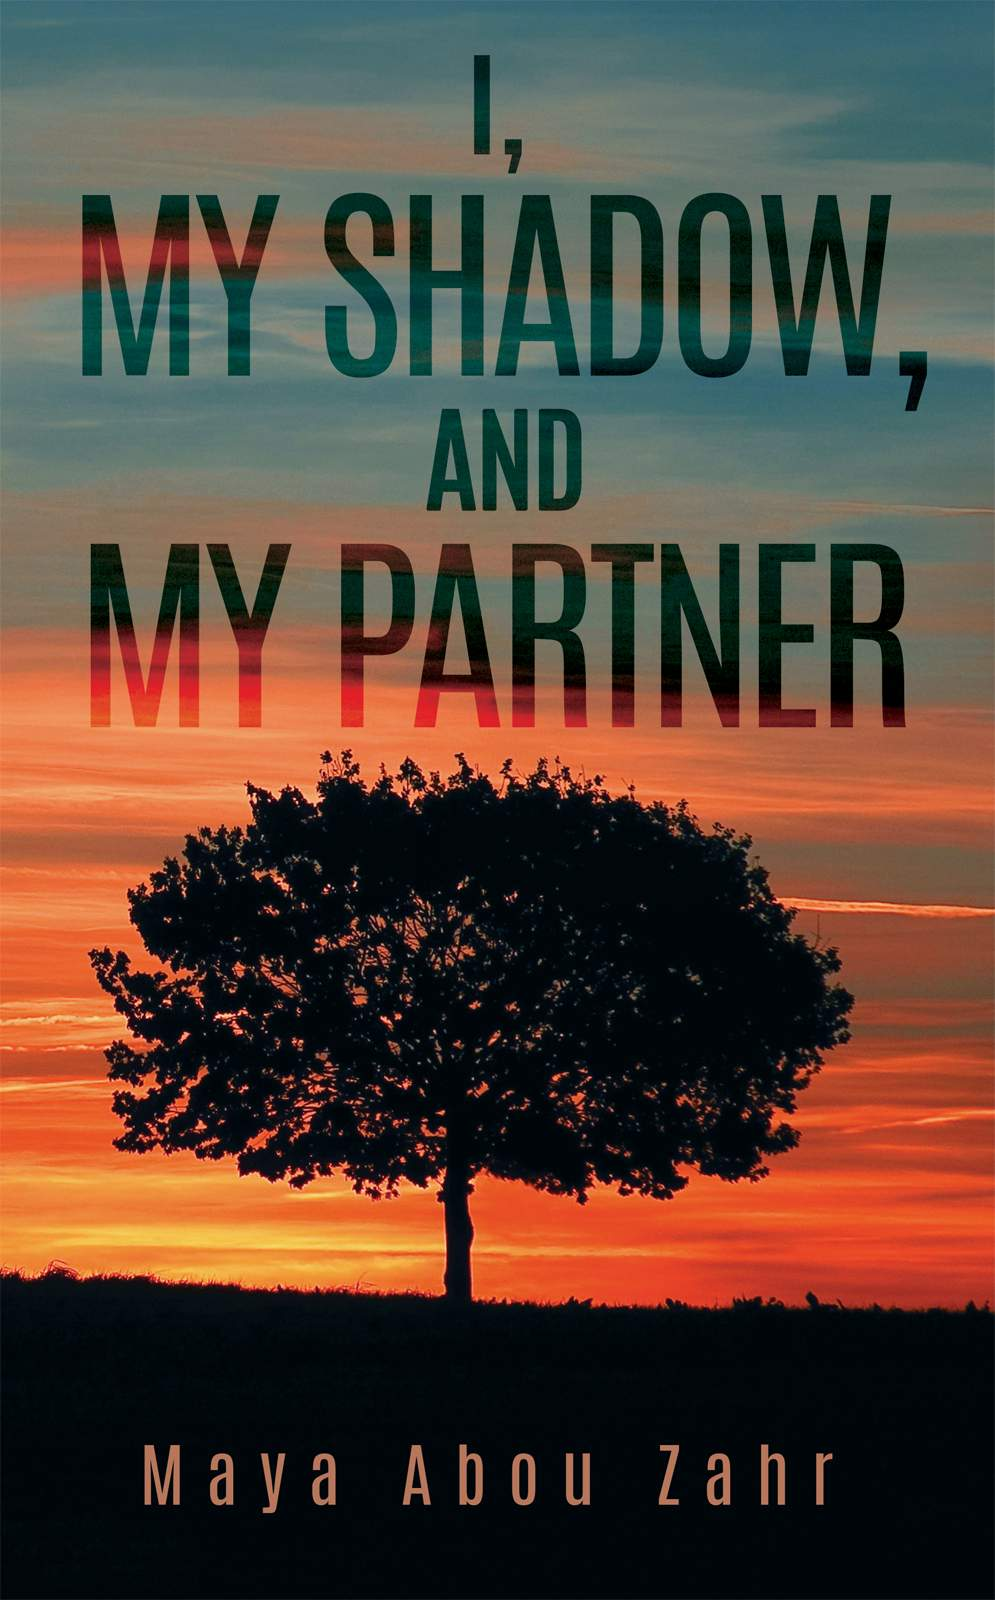 I, My Shadow, and My Partner